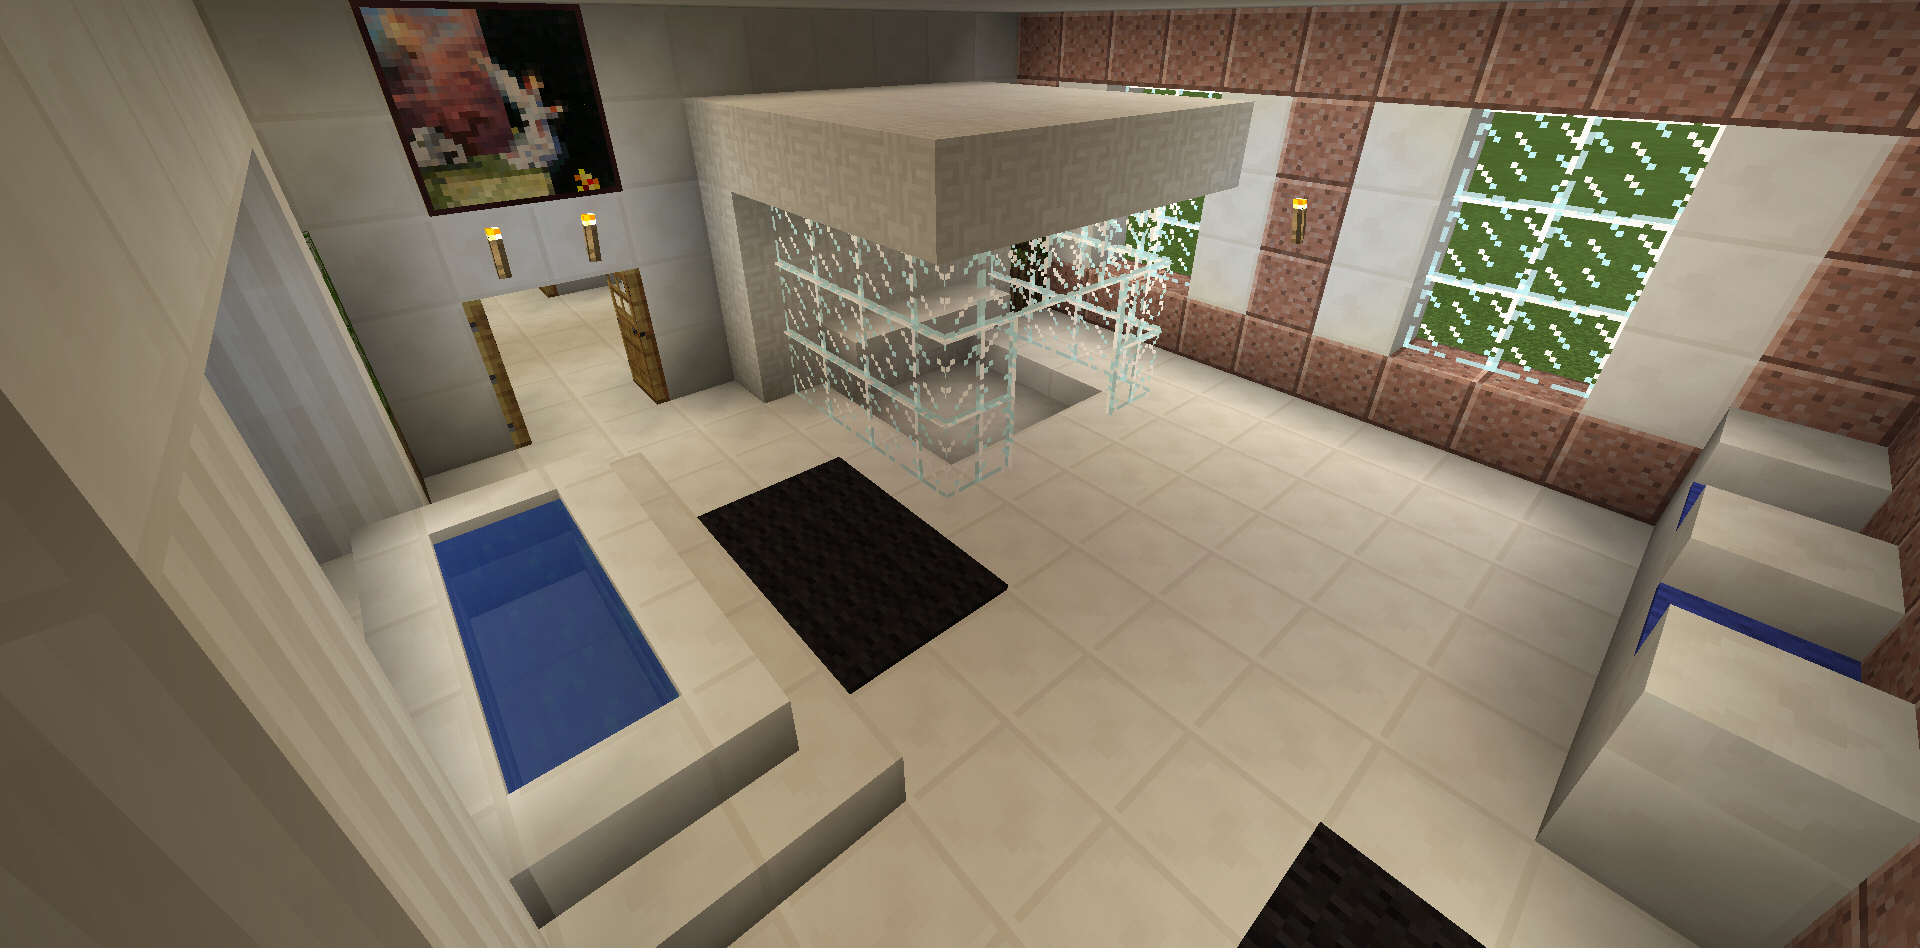 Bathroom Ideas Minecraft minecraft bathroom glass shower garden tub sink | minecraft